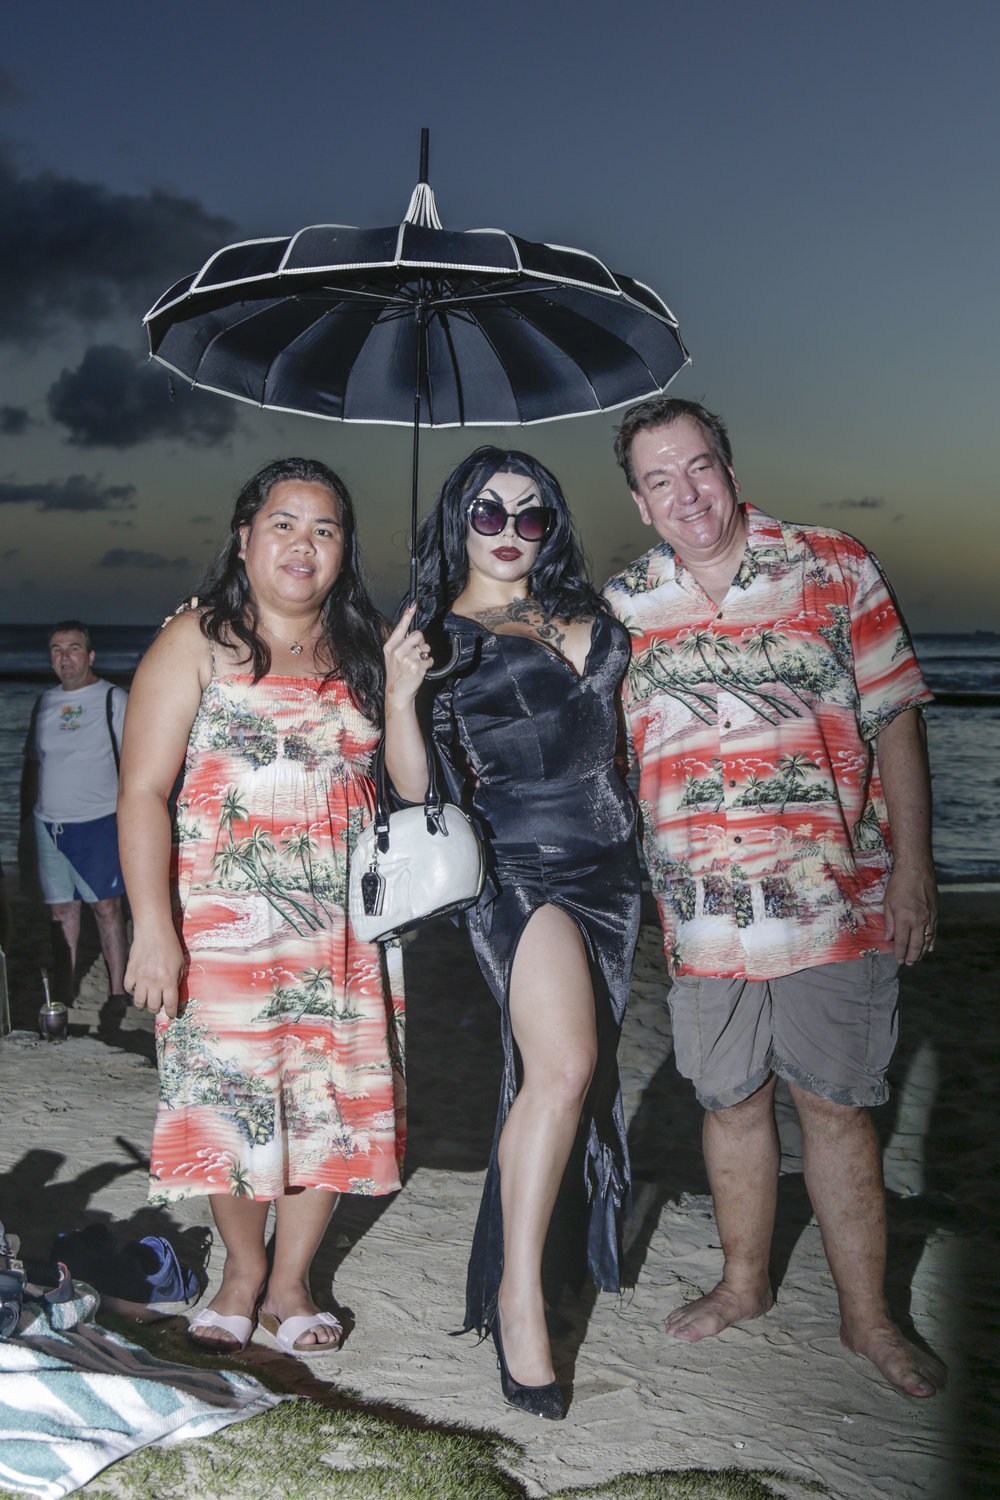 Tracy Lashes poses with tourists in Waikiki, HI. The tourism industry is a major contributor to Hawai'i's economy. According to the Hawai'i Tourism Authority, there are about 220,000 visitors per day in Hawai'i. On O'ahu alone, tourists spend about $19.9 million daily. This has made it difficult for Native Hawaiians to preserve their culture due to new developments constantly being built to meet the high demands of the tourism industry. Many culturally significant sights have been destroyed because of this.